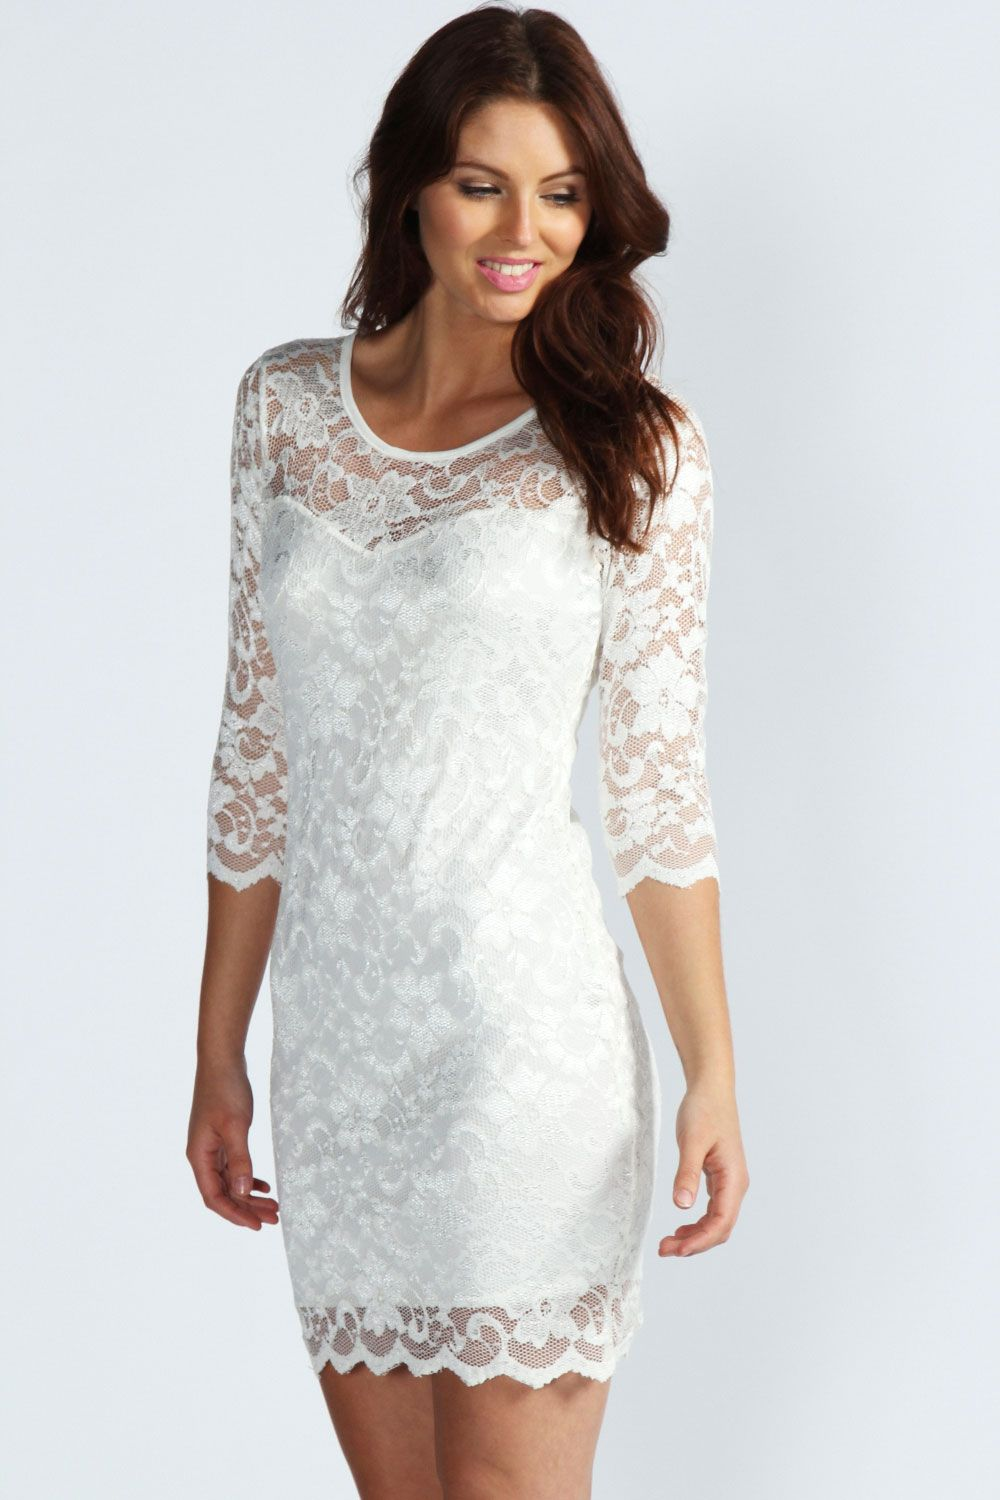 White cocktail dress for wedding  Pin by Kayla Wobschall on Wedding  Pinterest  Dresses Bodycon